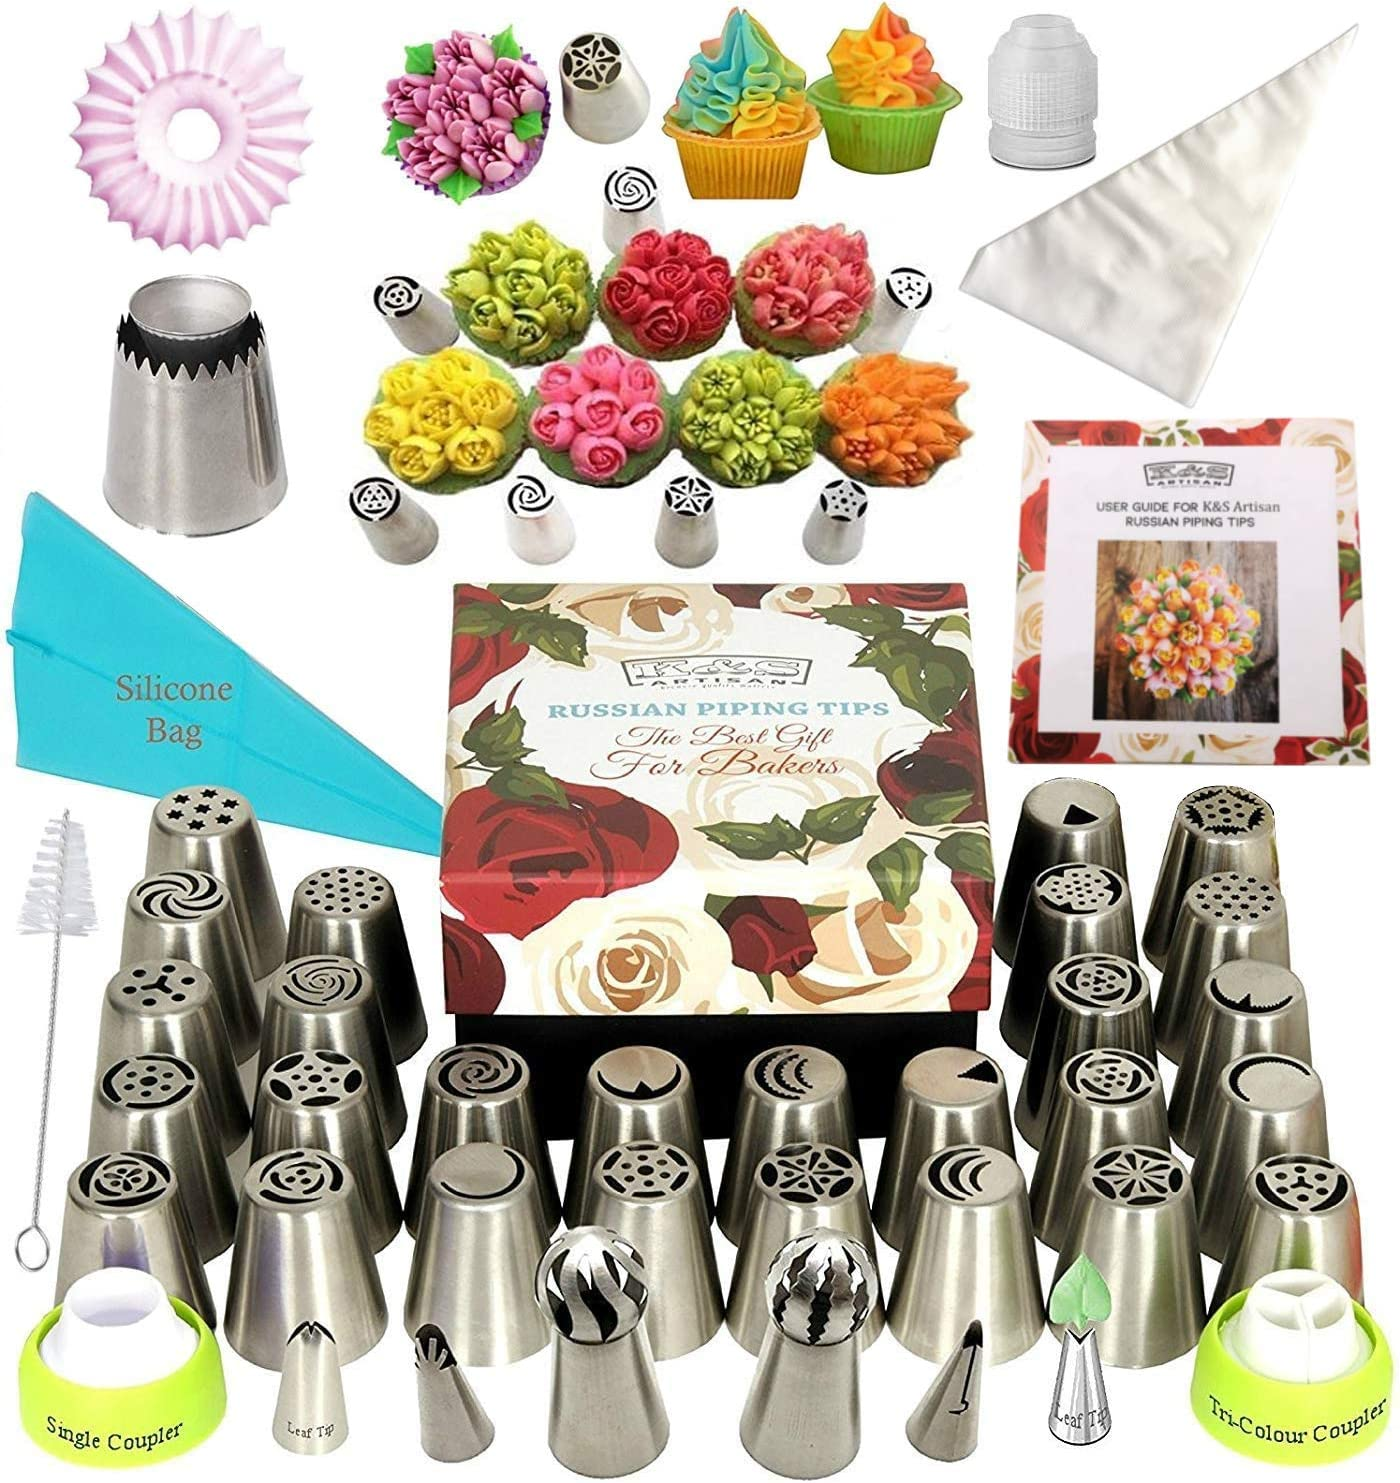 Artisan Russian piping tips deluxe cake decorating supplies.